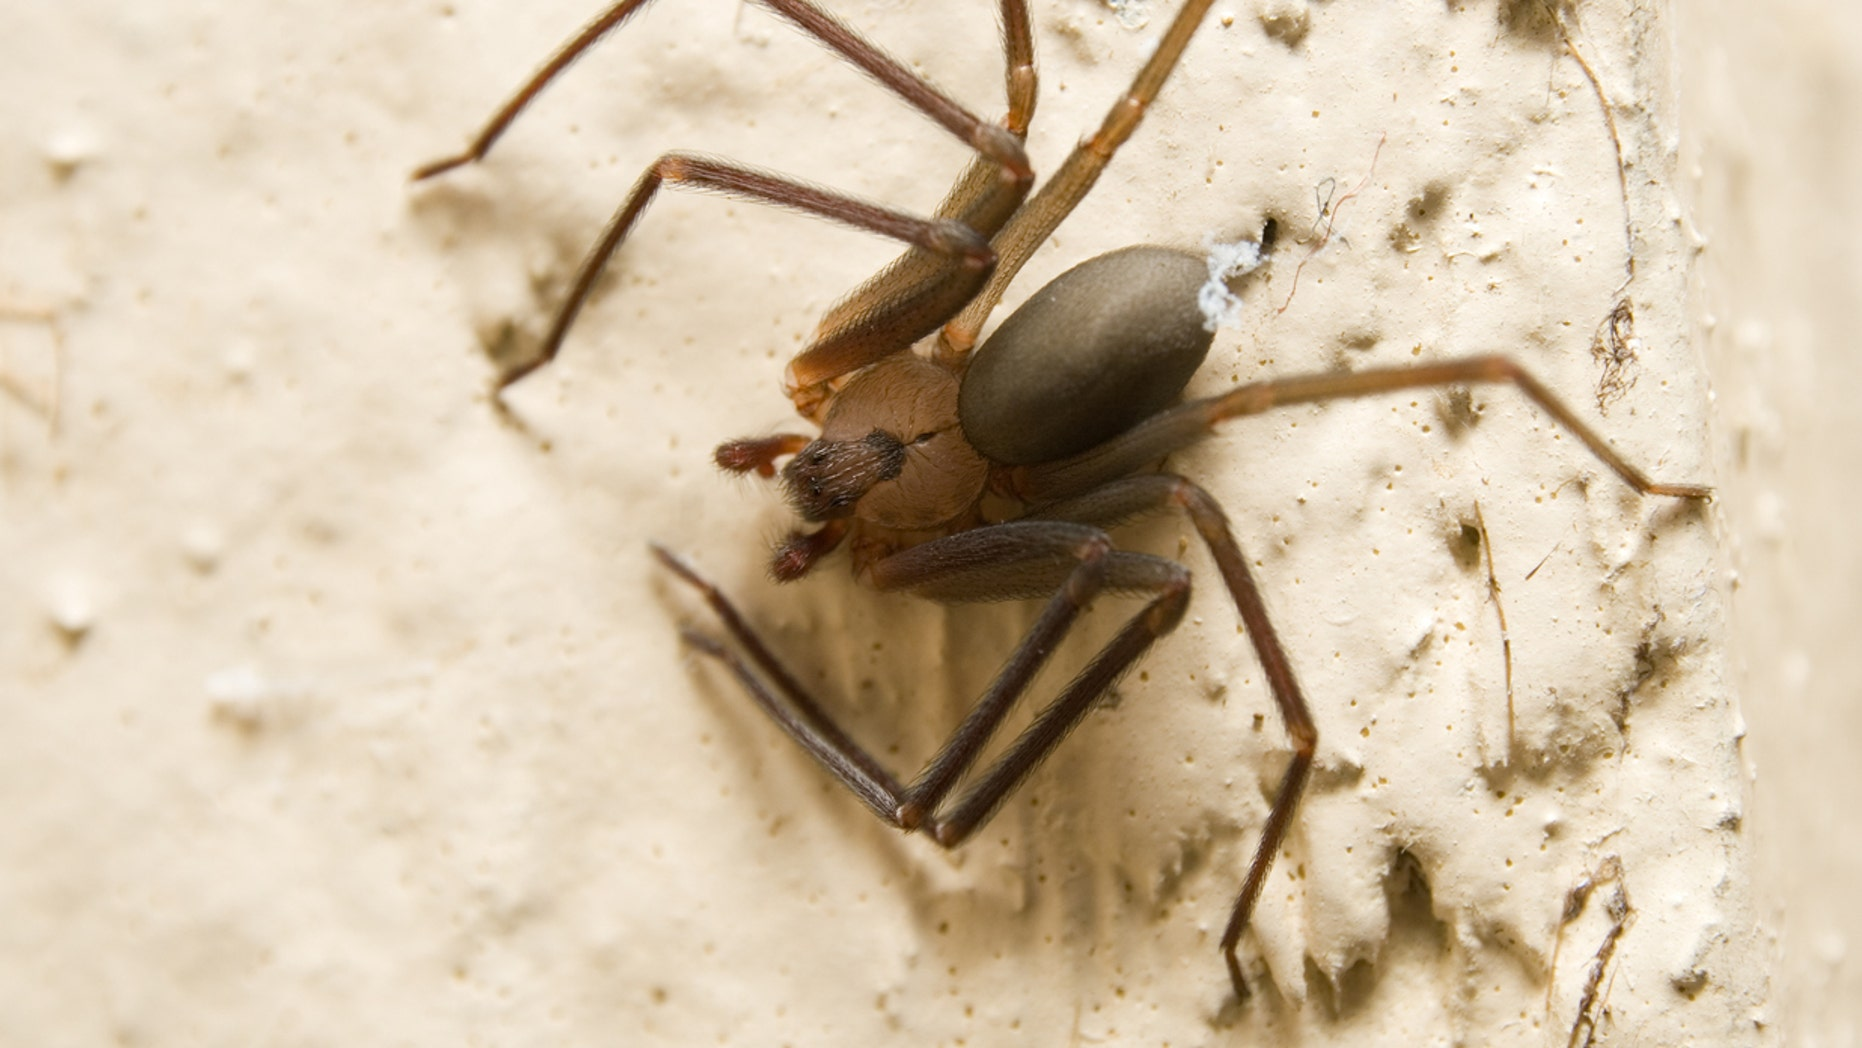 A Mississippi man who claims he was bitten by a brown recluse spider while awaiting takeoff on an American Airlines flight in 2016 is now suing.